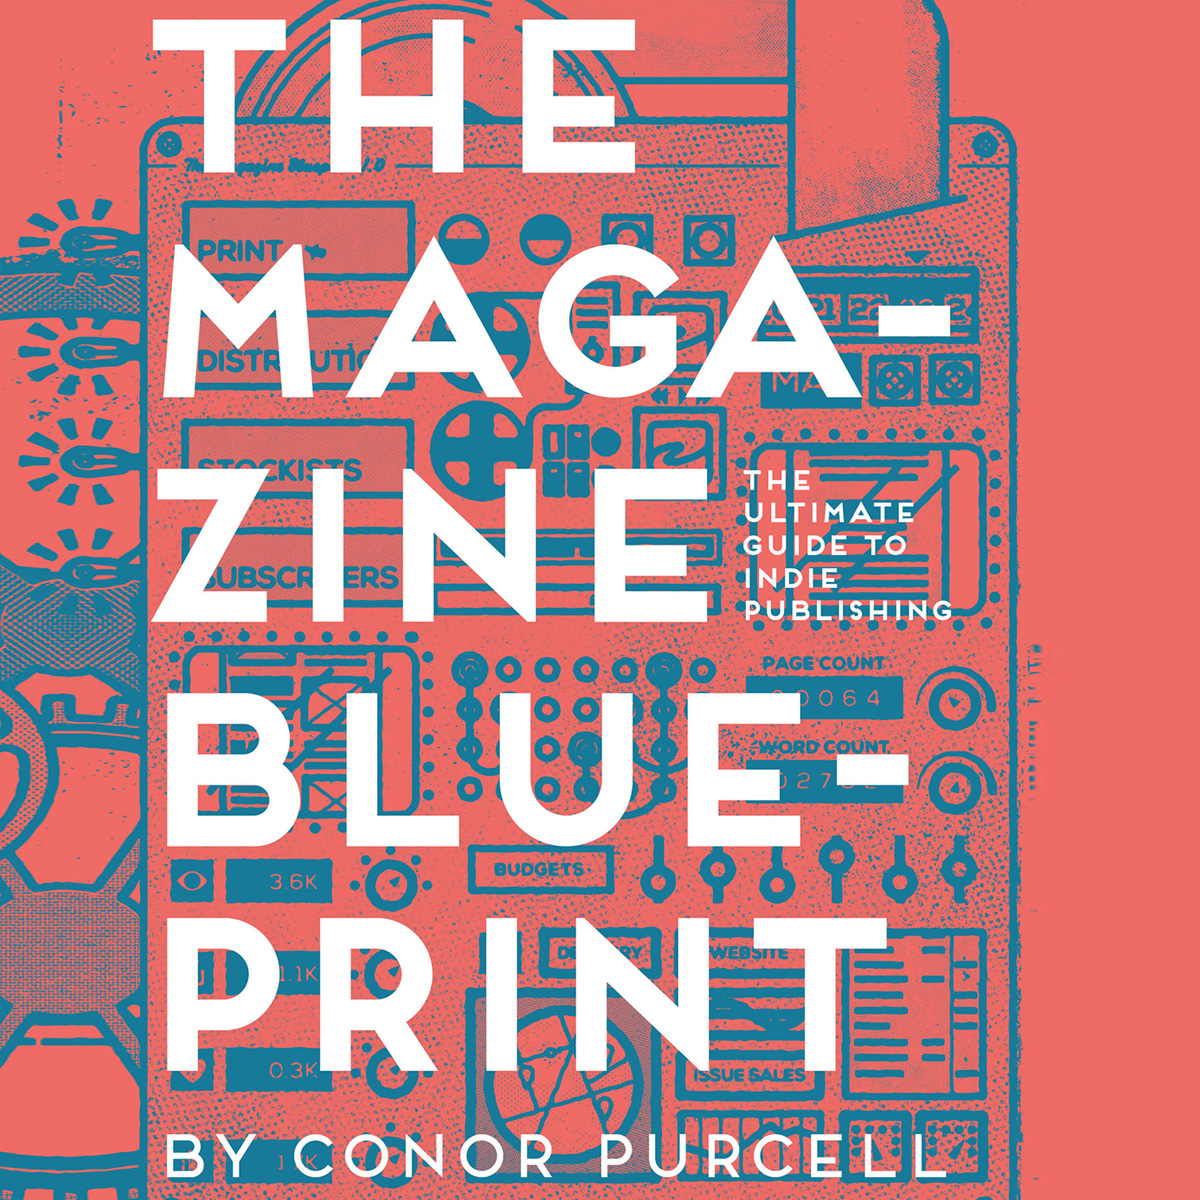 wed_21st_6pm9pm_brthe_magazine_blueprint_book_launch_panel_discussion